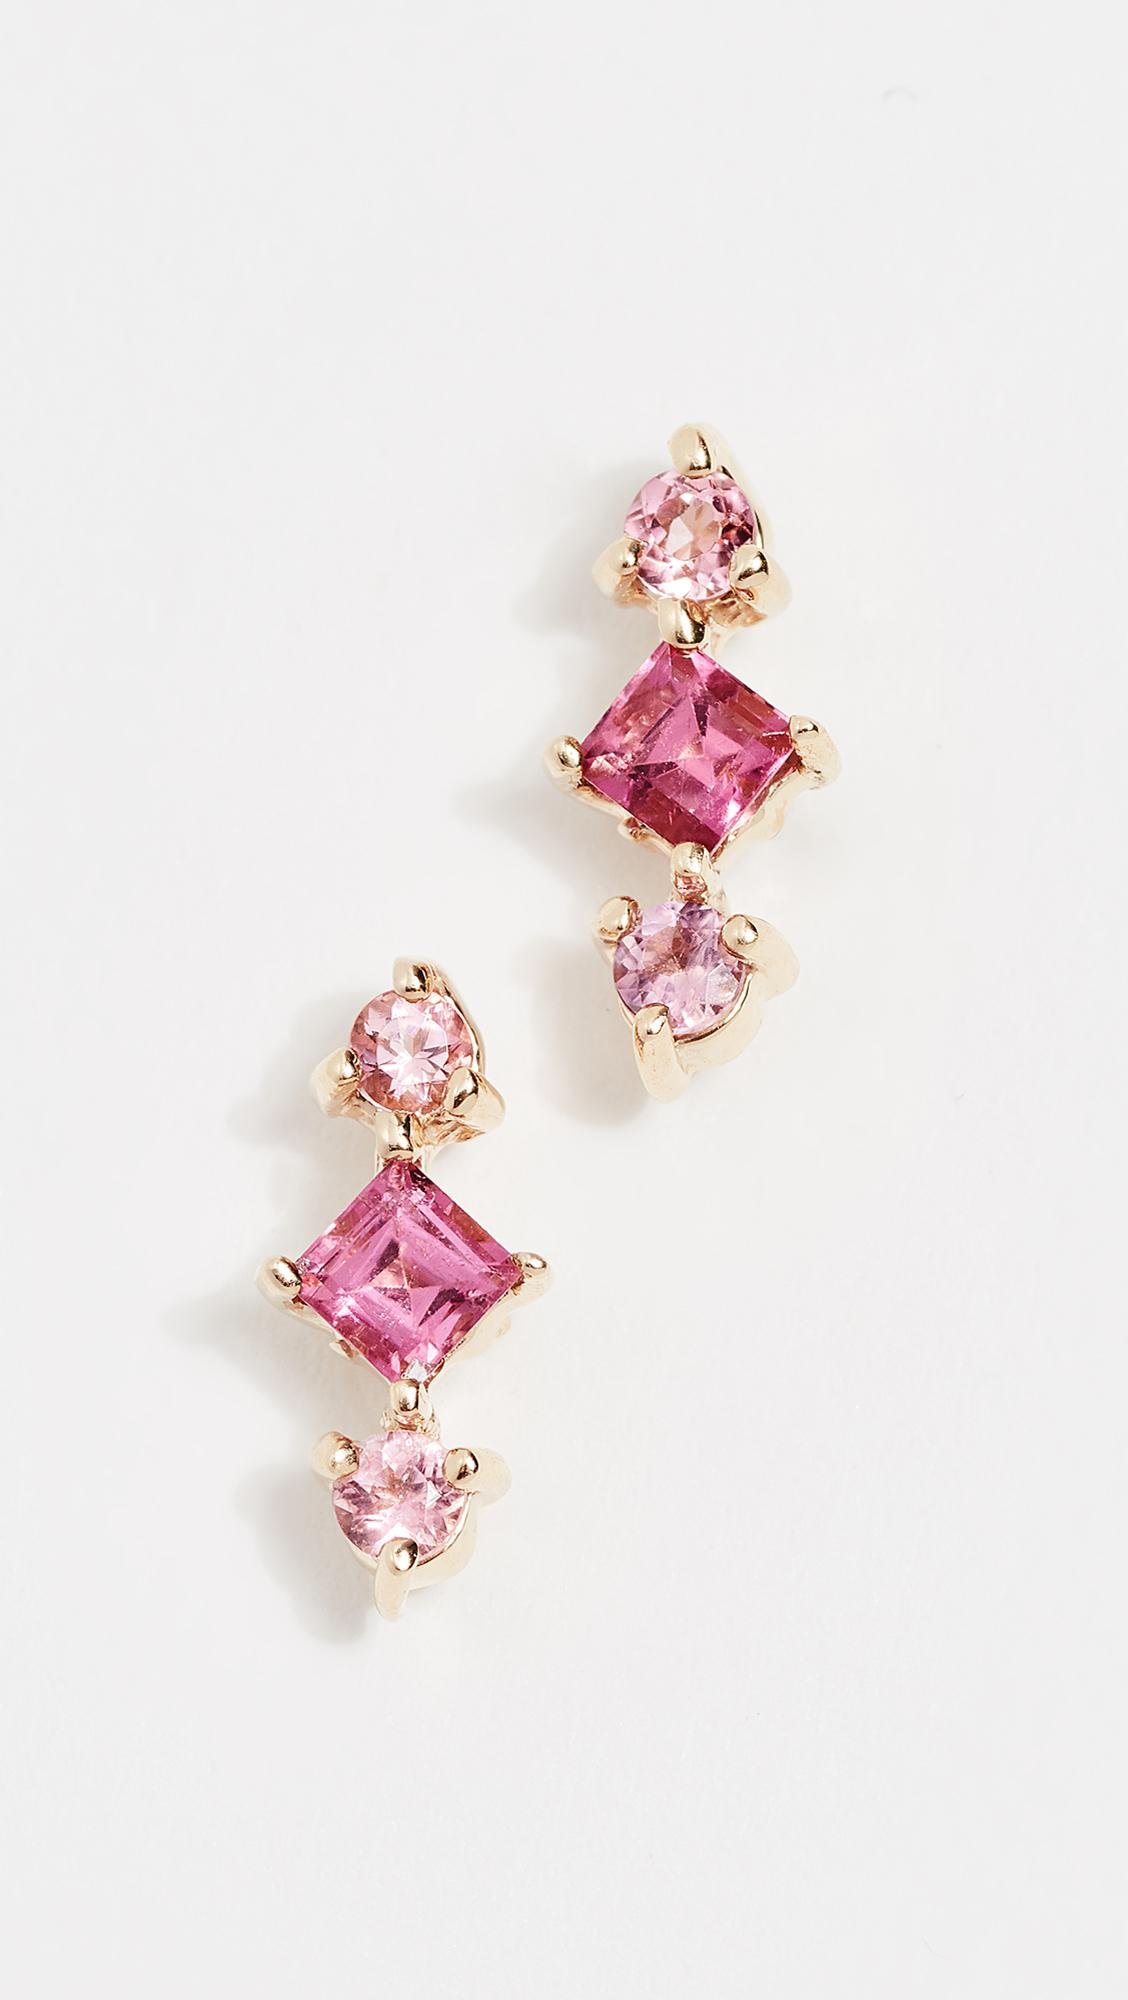 Eden Presley 14k Gold Shades Tourmaline Earrings fHLWXy